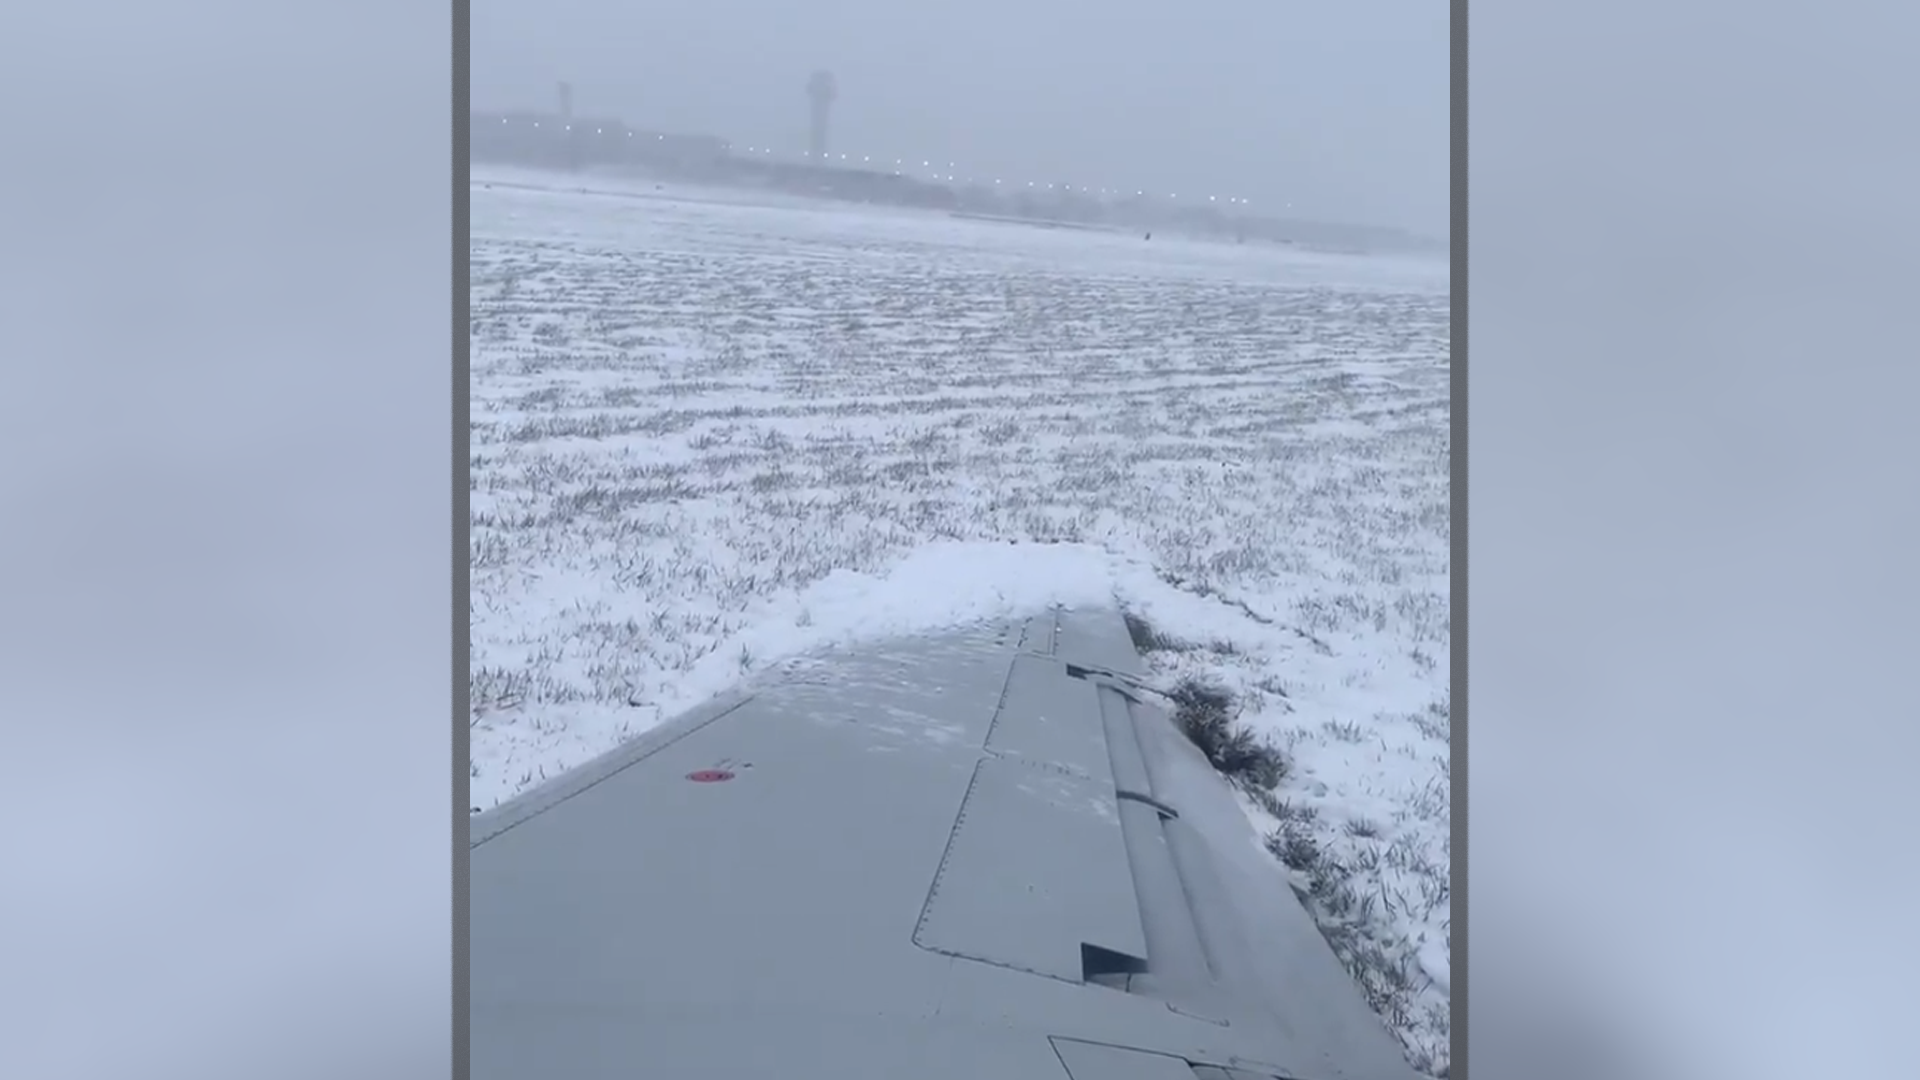 Plane Slides Off Runway At Chicago's O'Hare Airport Due to Icy Conditions